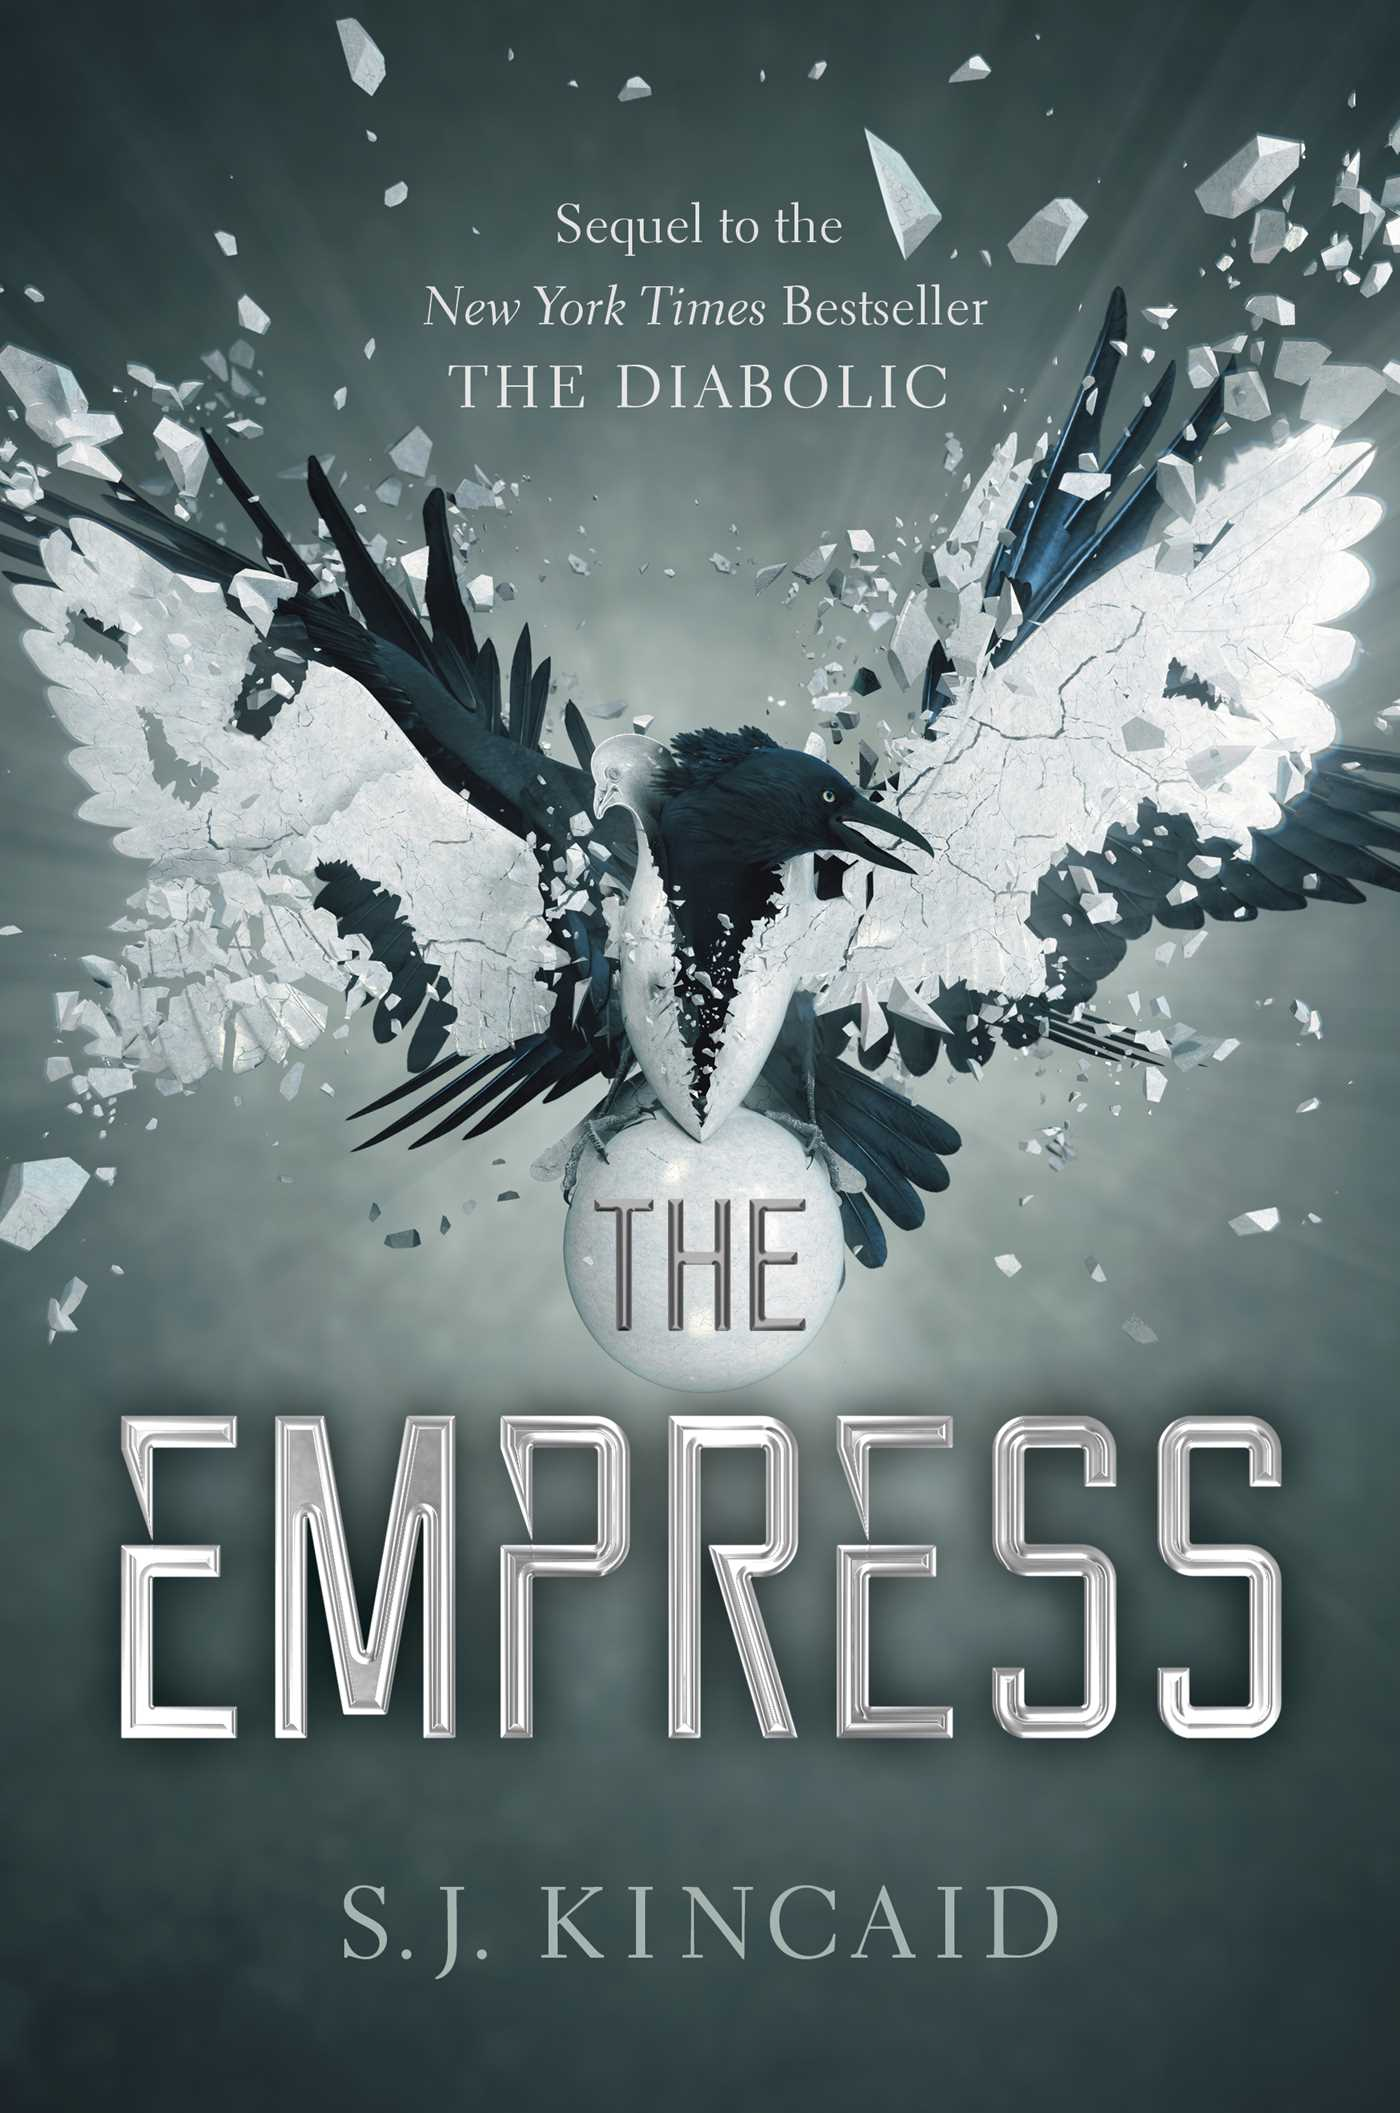 Book Cover Image (jpg): The Empress